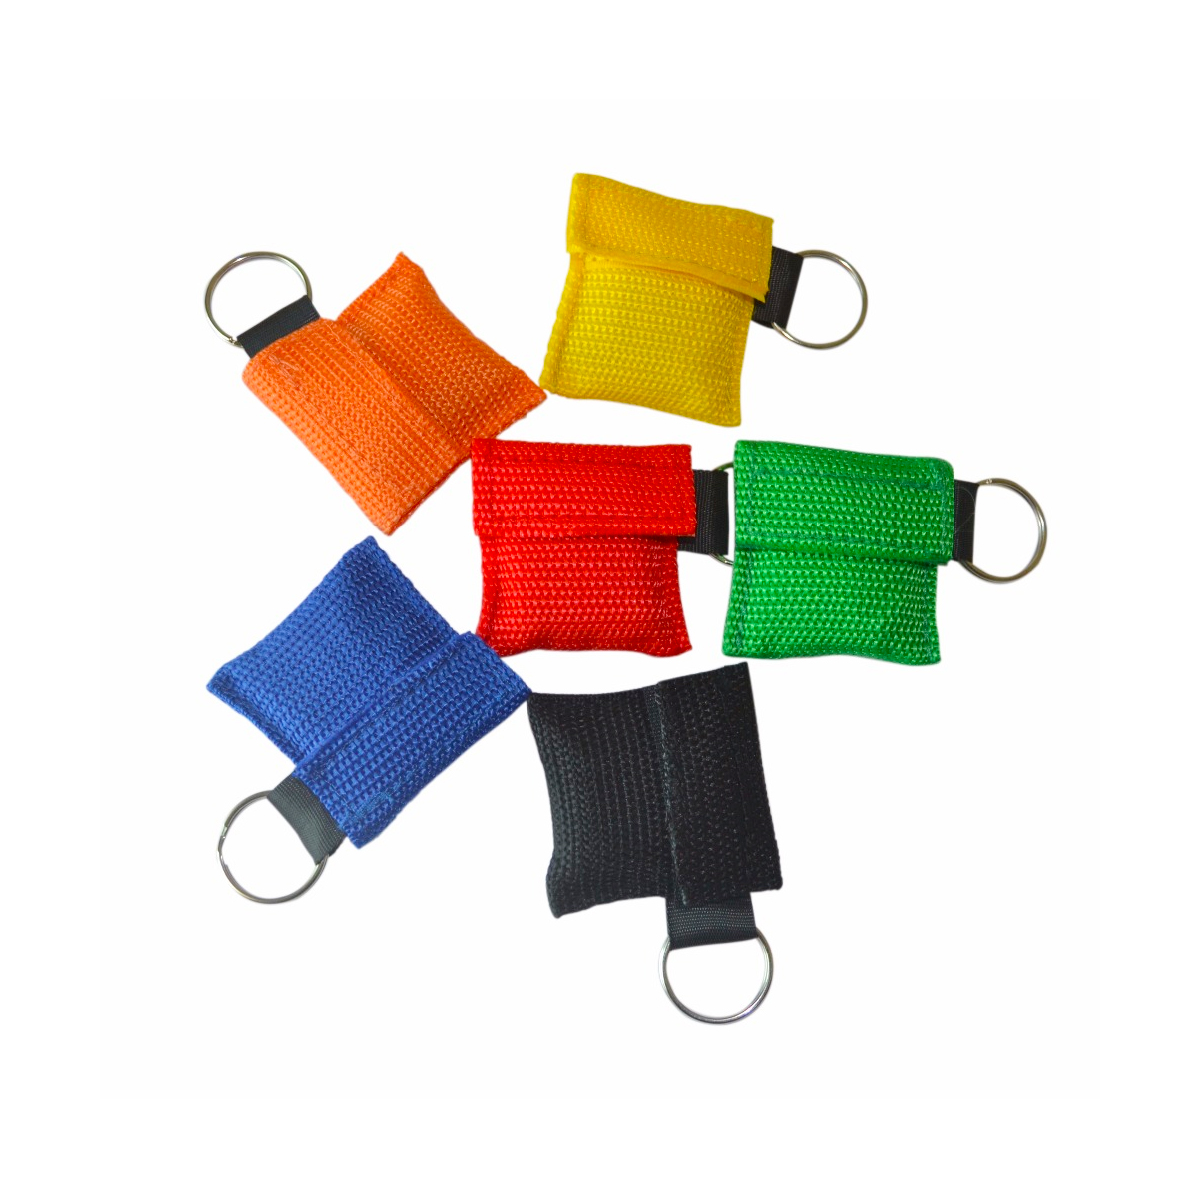 100 PCS lots NEW CPR MASK WITH KEYCHAIN CPR FACE SHIELD For Cpr AED 6 COLORS